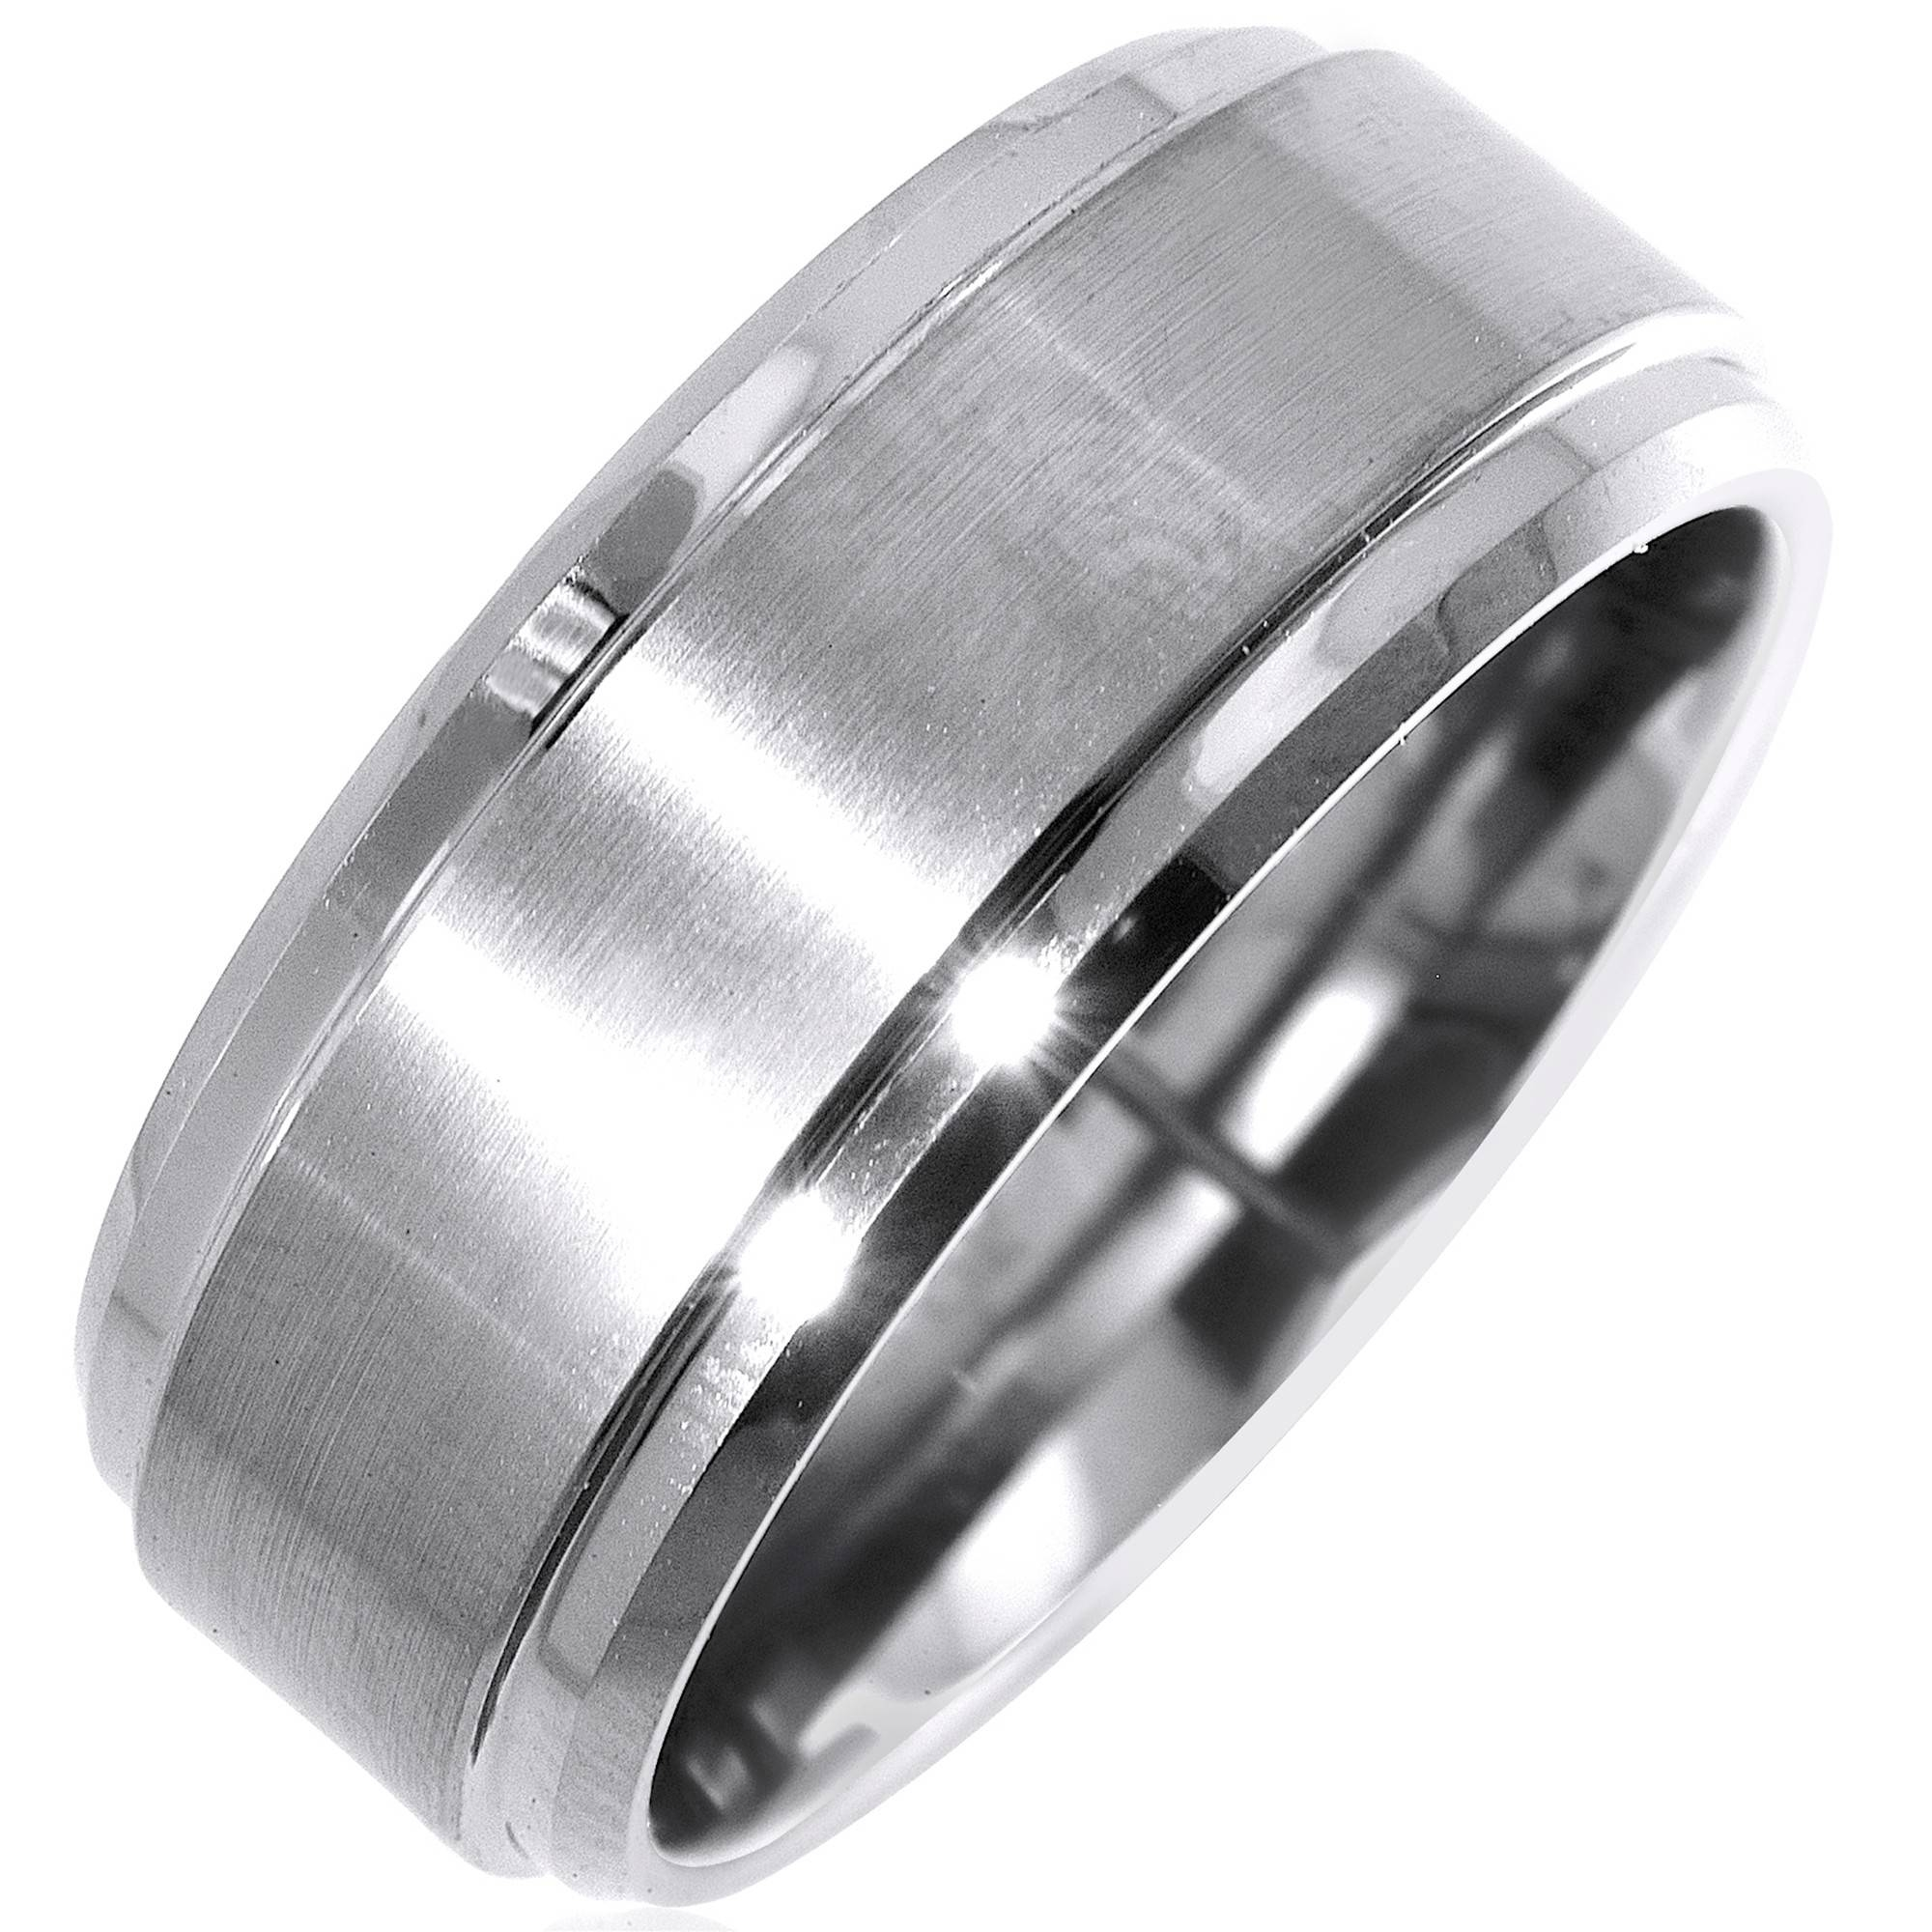 Artcarved Devon Mens Carved Wedding Band In Tungsten Carbide (9Mm) Pertaining To Artcarved Men Wedding Bands (View 3 of 15)